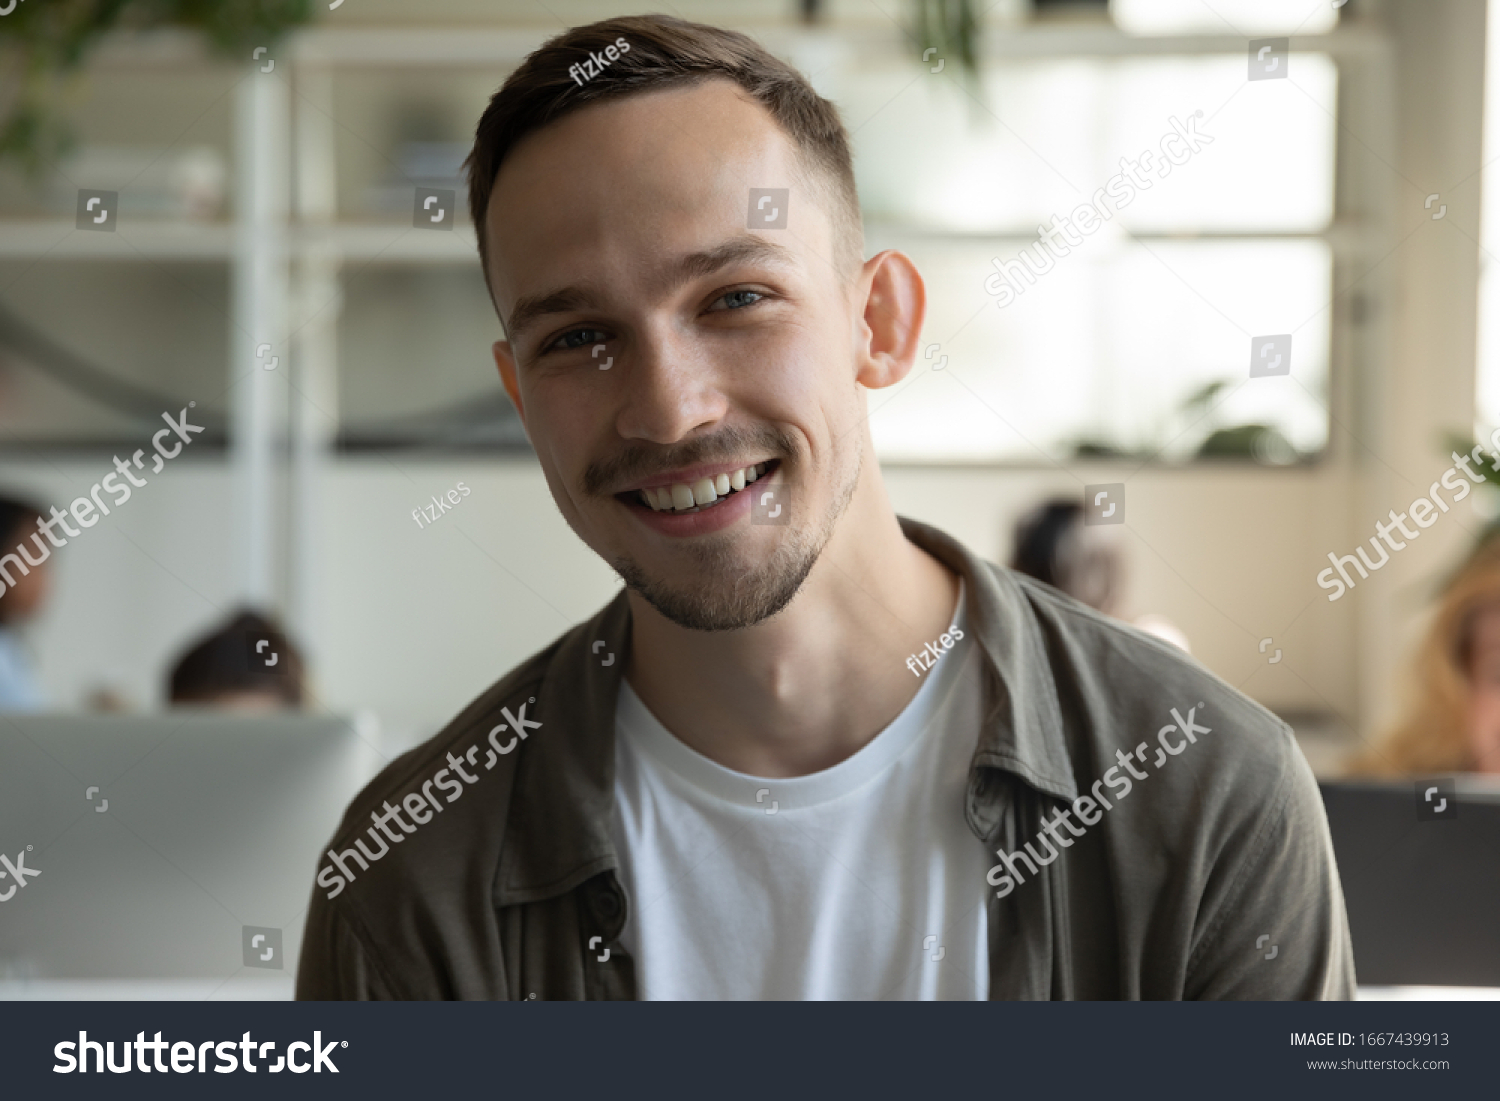 Headshot portrait of smiling millennial male employee talk on video call or web conference in coworking office, profile picture of happy Caucasian young man worker posing in shared workplace #1667439913